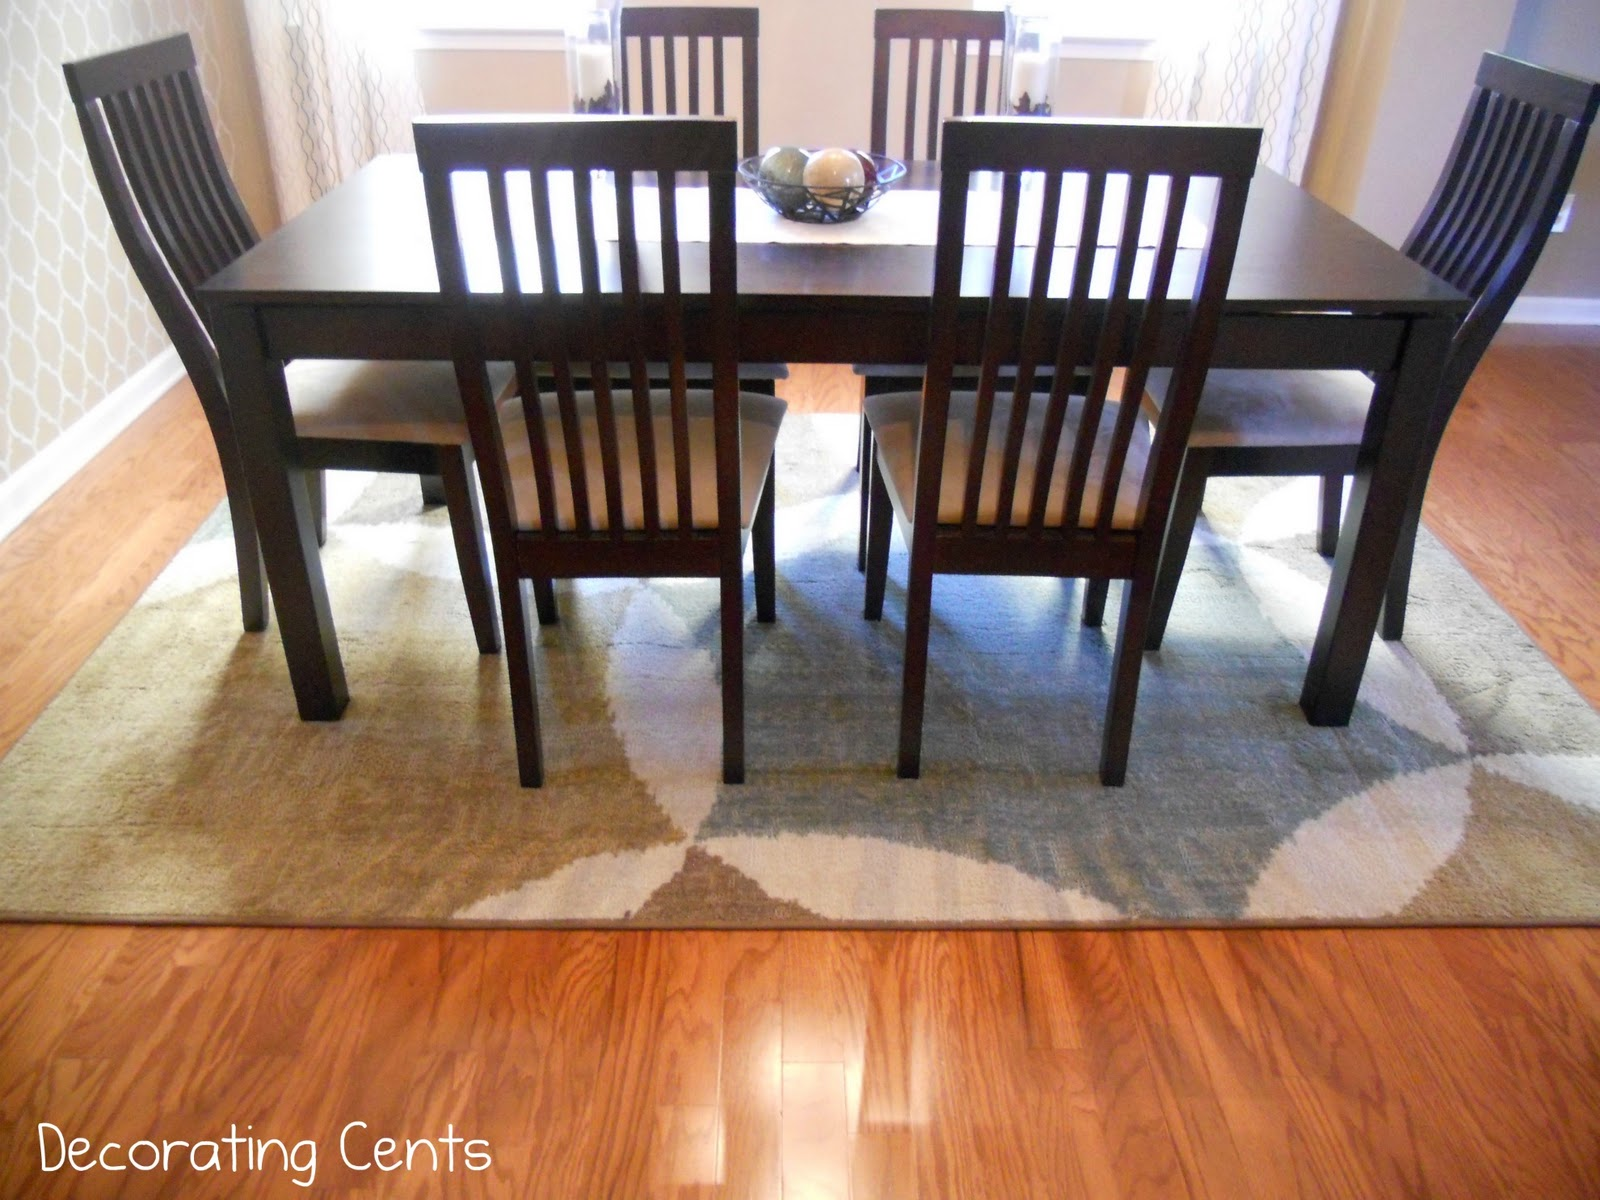 Decorating cents dining room rug for Dining table rug